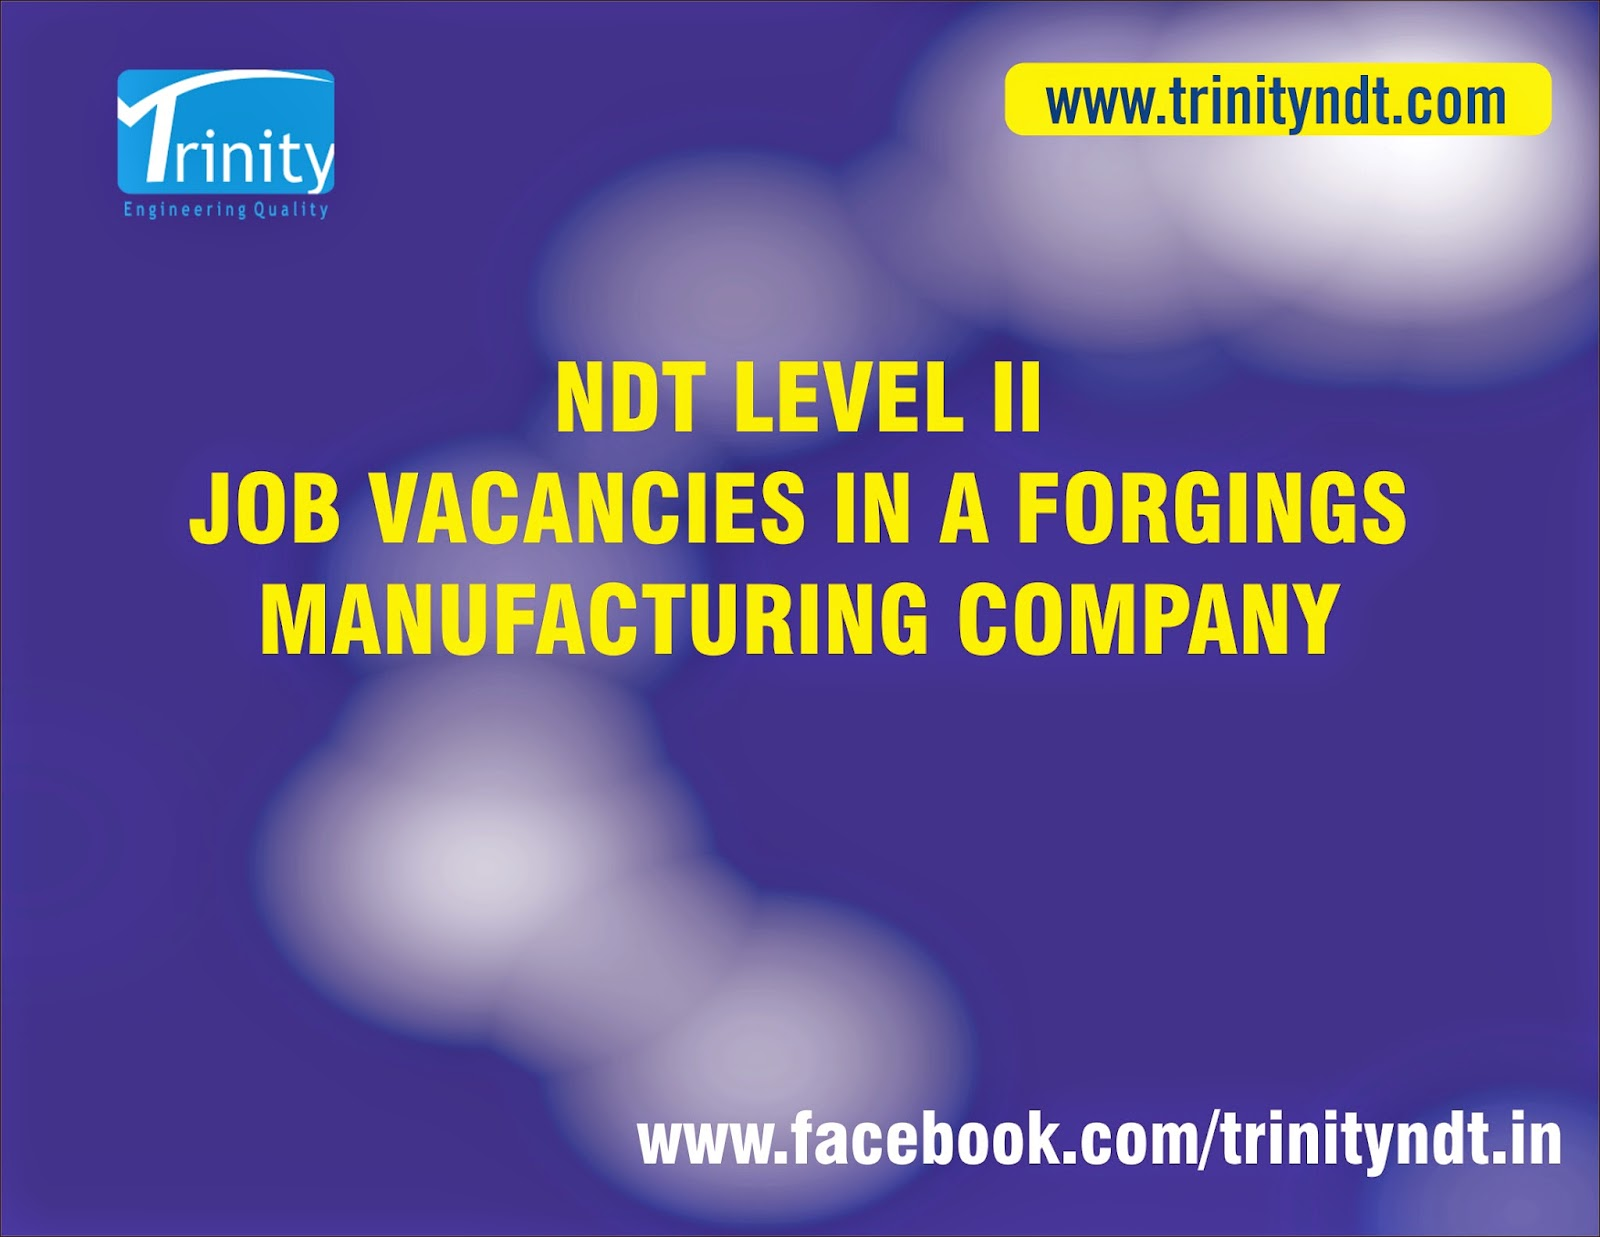 ndt vacancies in forging company x machines